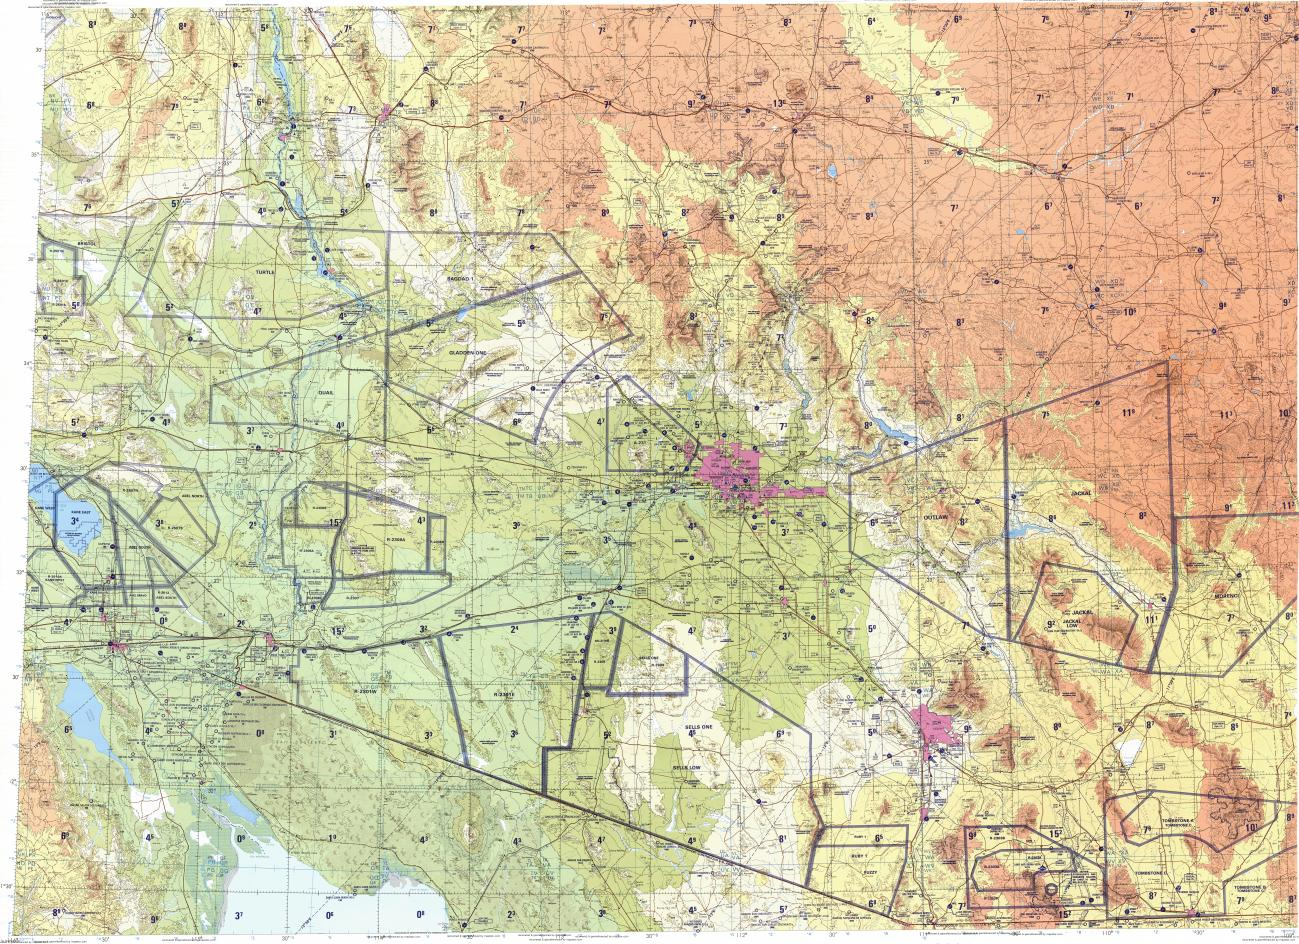 topographical map of colorado with En Tpc 500k G19 D  1994  N035 30 W116 00 N031 30 W109 00 on 27082g4 likewise Utah Topo Map additionally Trinidad Colorado further Fenn Treasure Hunt Map in addition Indian Petroglyphs.